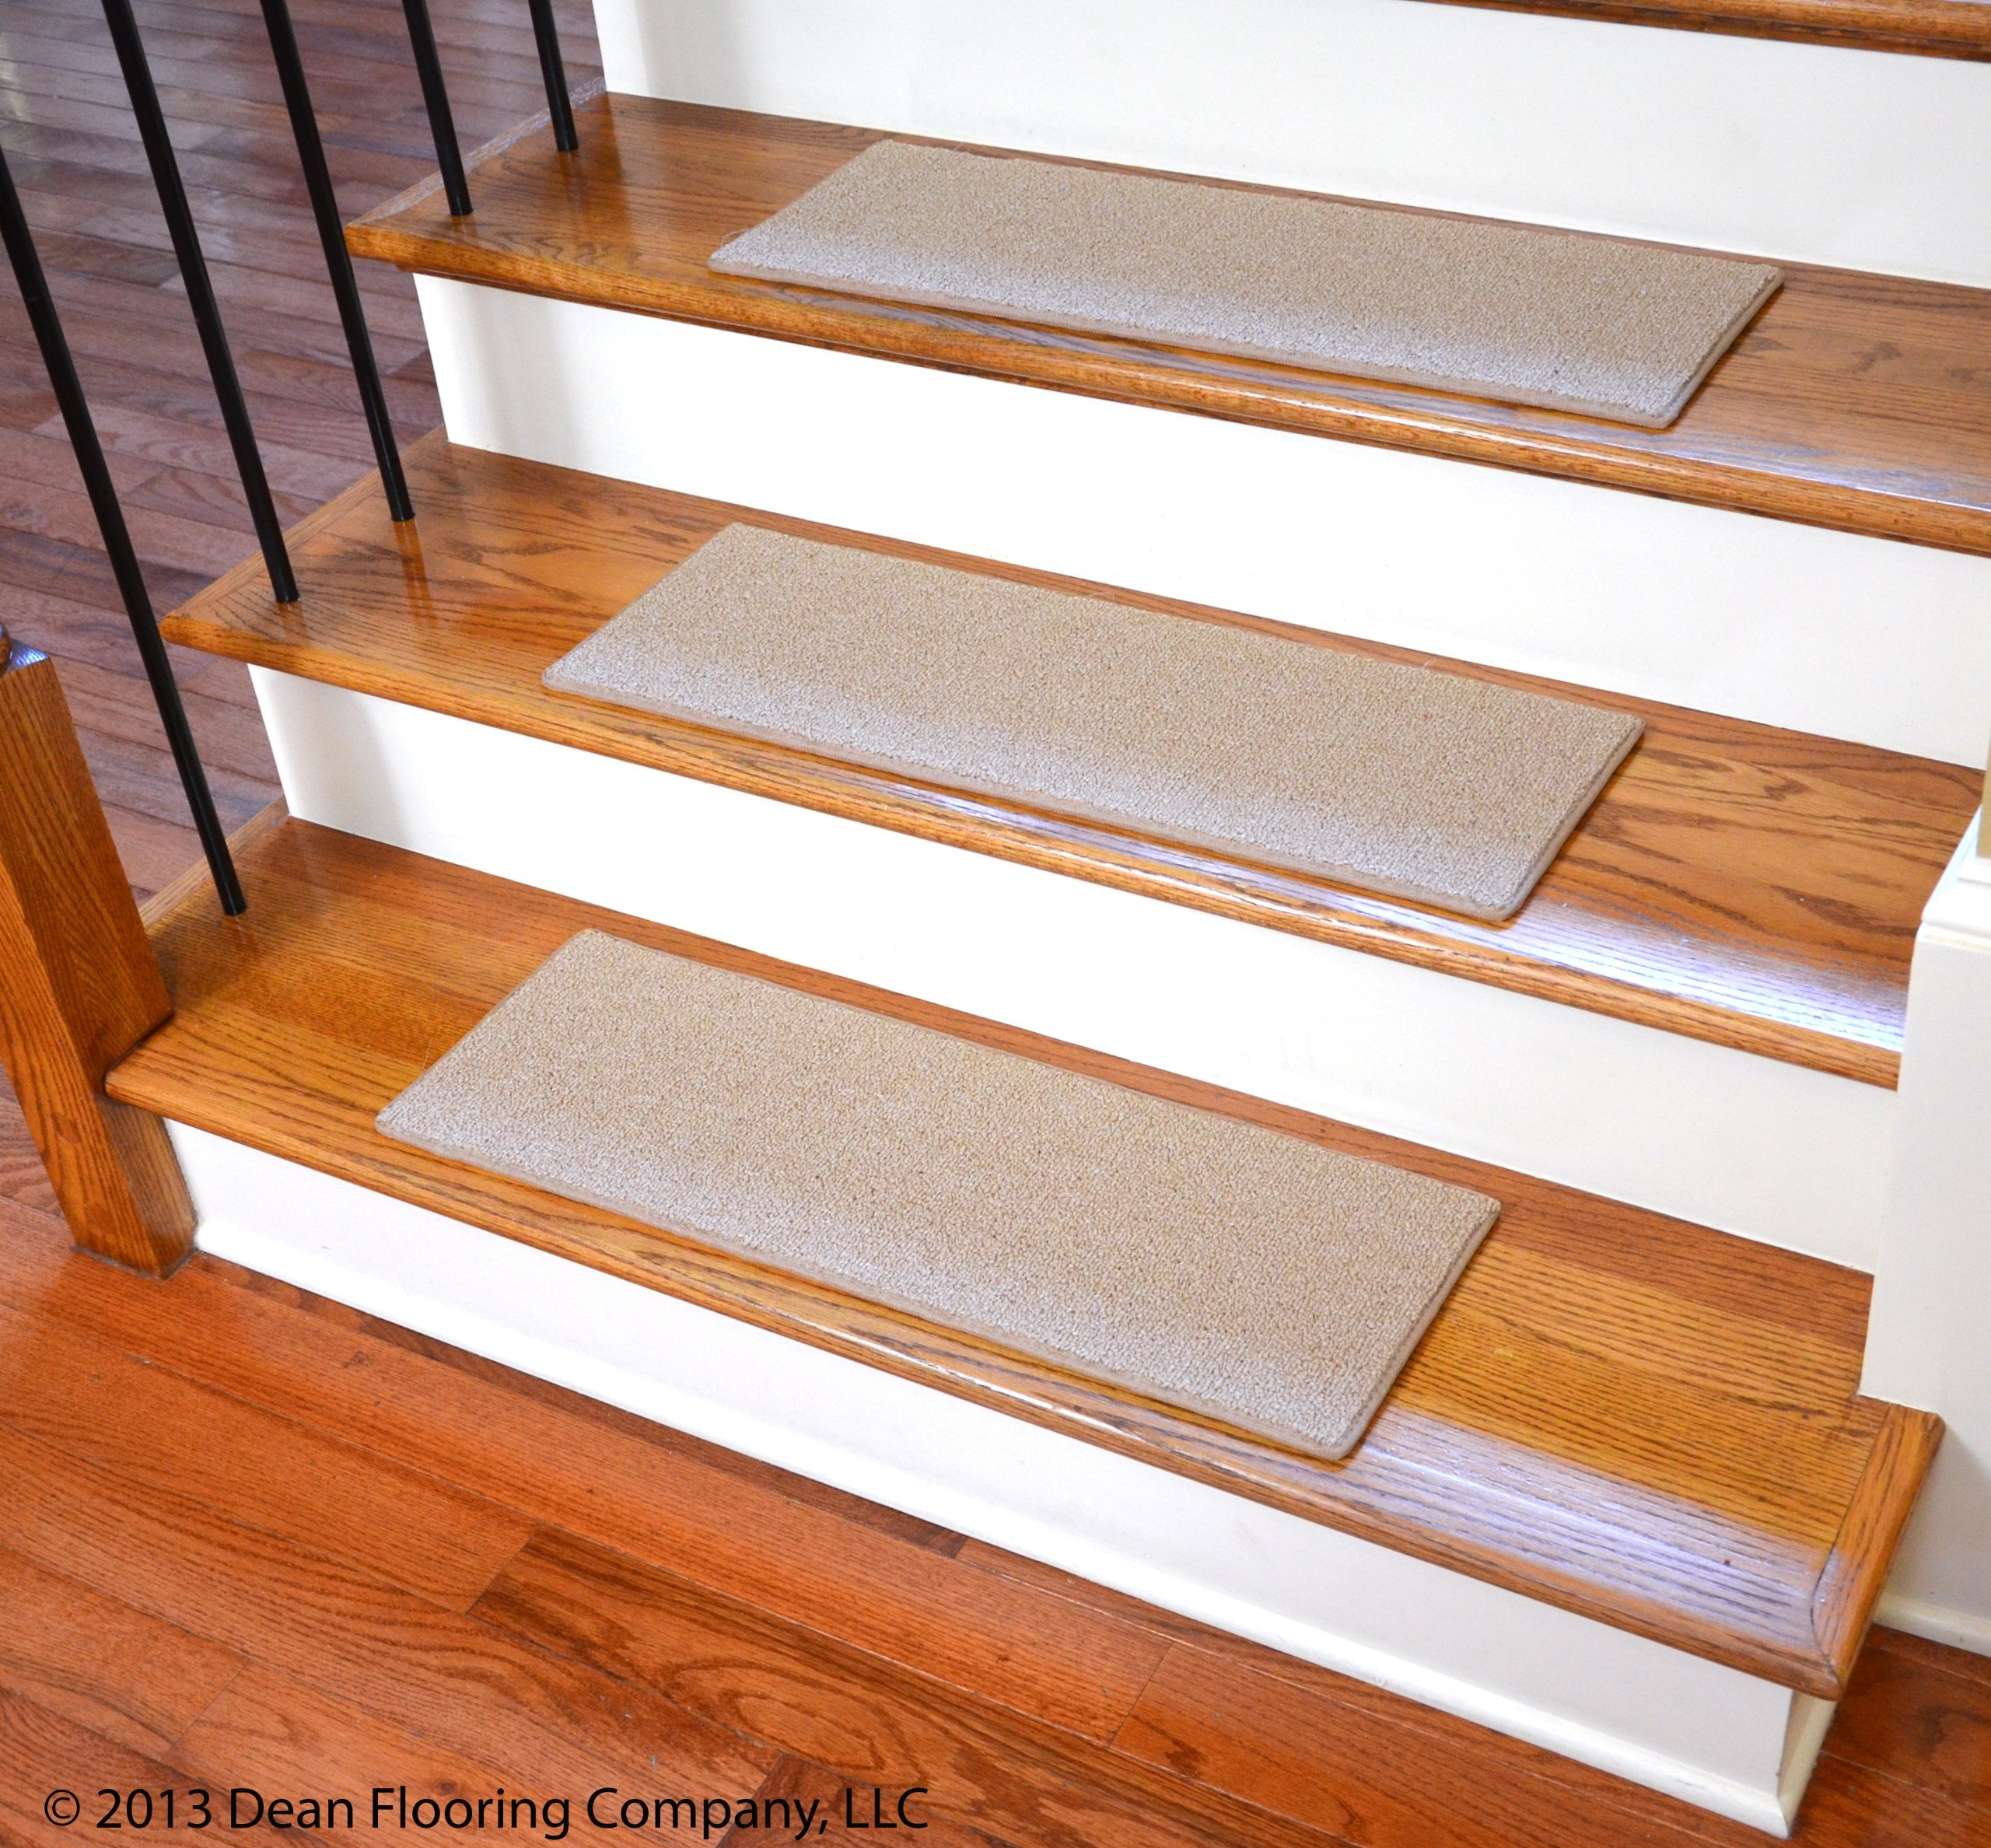 Viewing Photos of Stair Protectors Wooden Stairs (Showing 6 of 20 ...